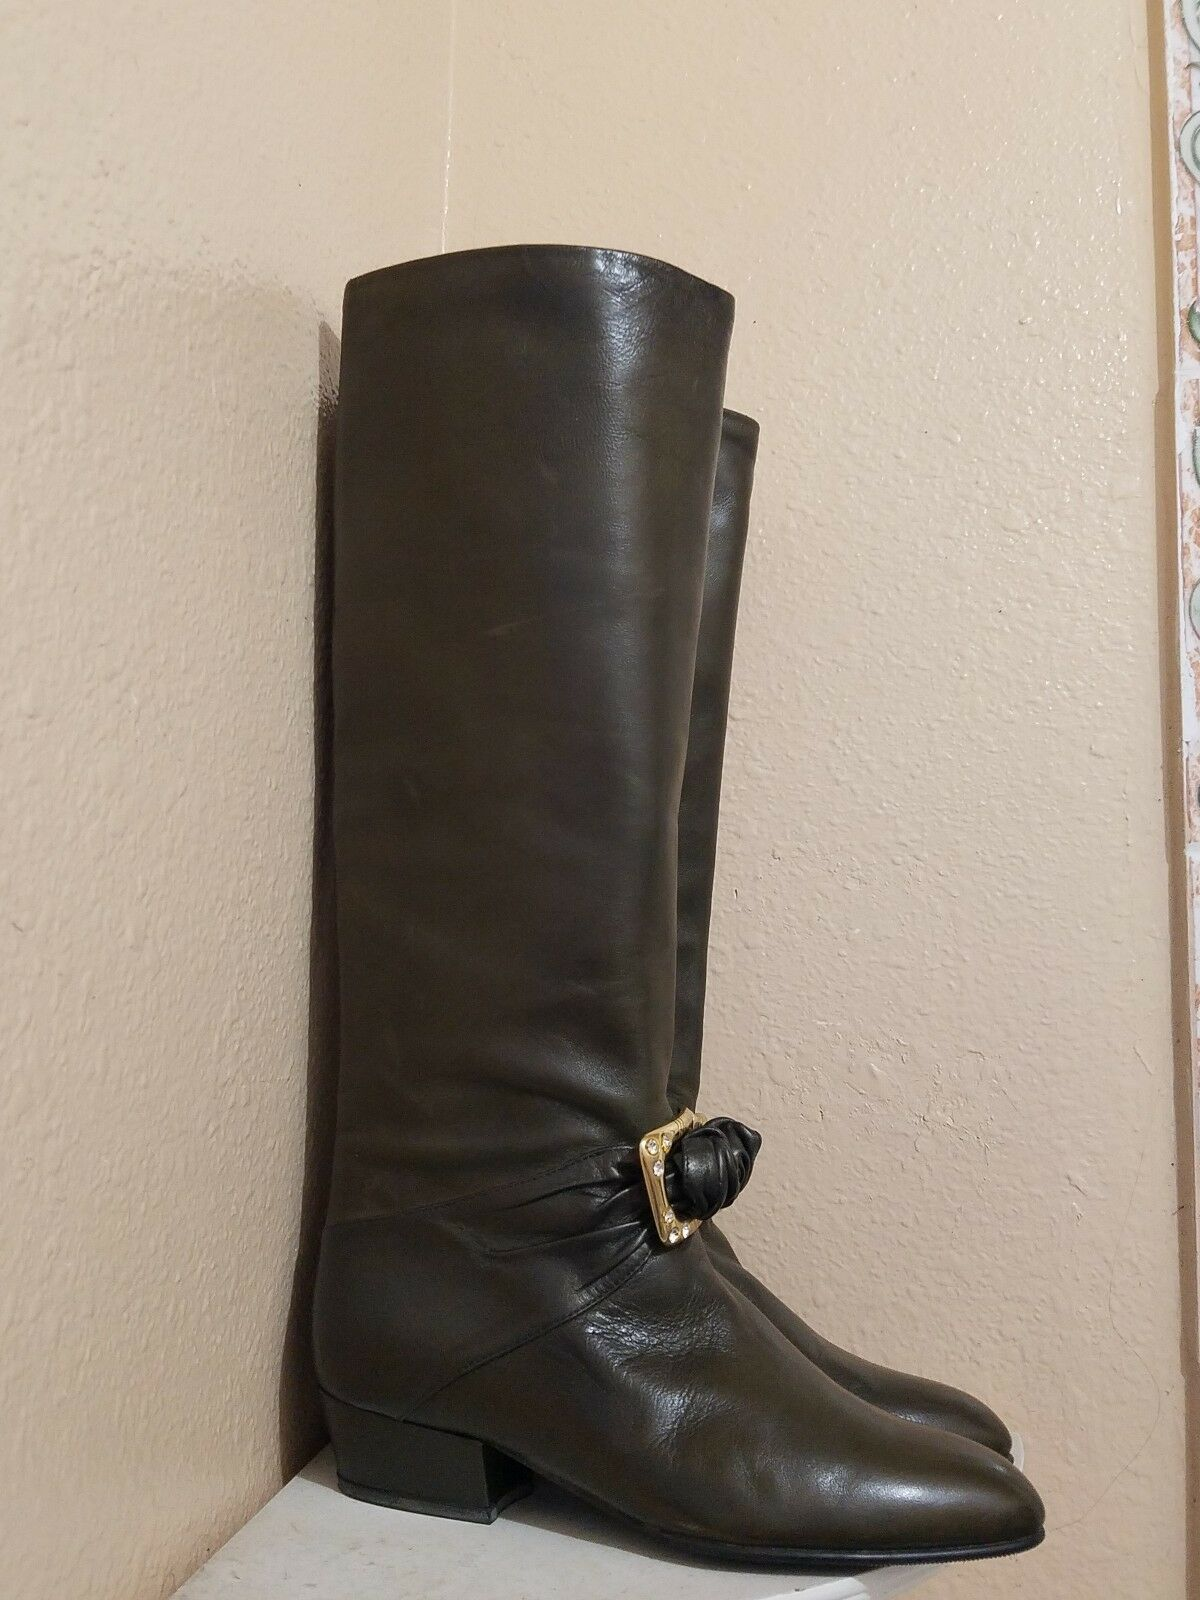 Contempo shoes Size 4.5 US 35.5 35.5 35.5 Knee Leather Boots Superb Handmade Italian Brown e62147